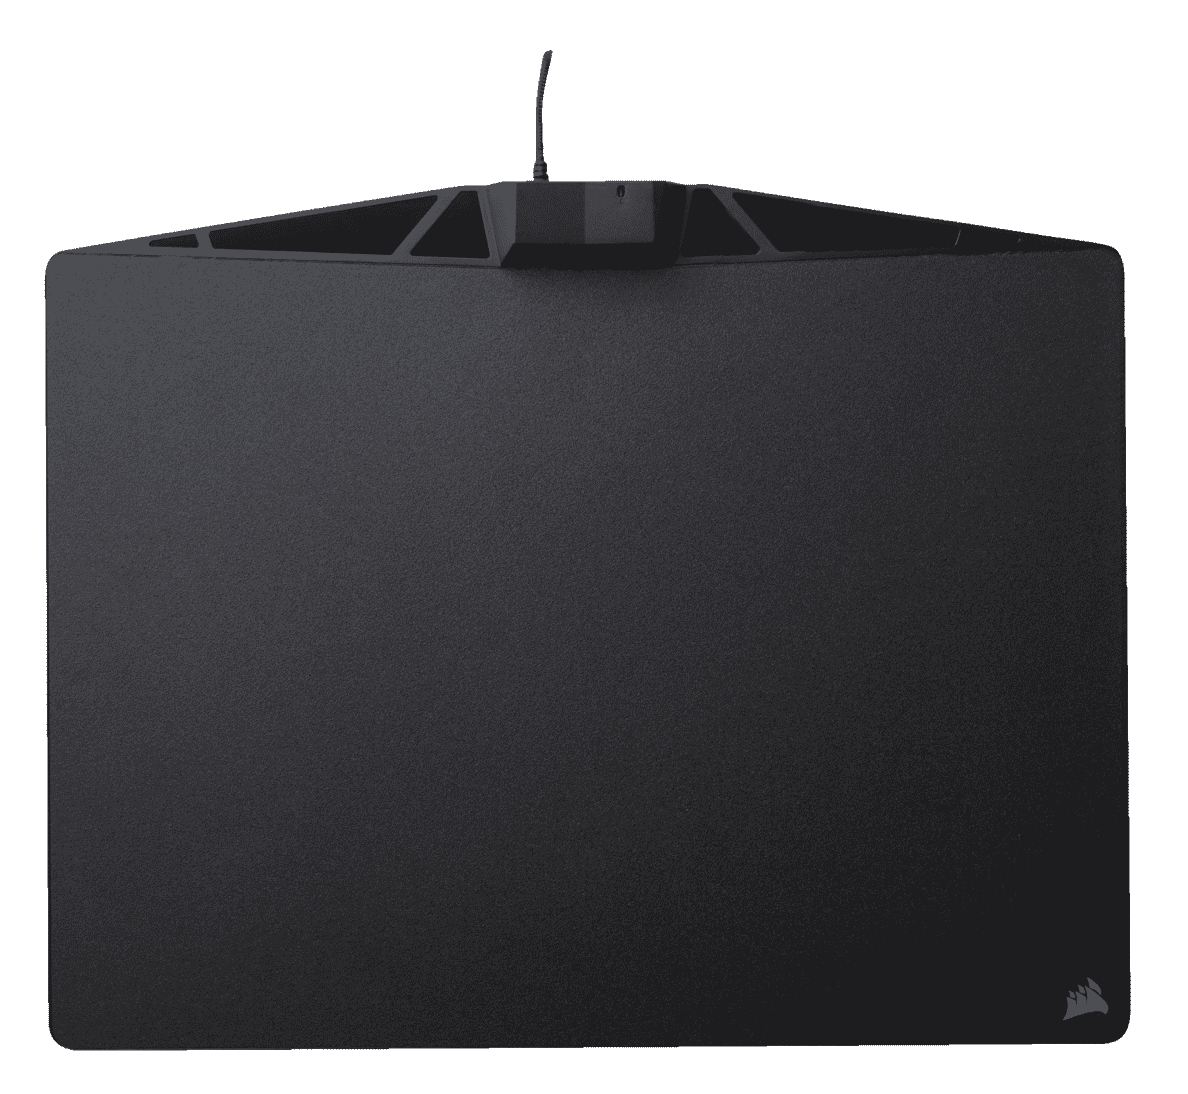 CORSAIR MM800 RGB Polaris Gaming-Mauspad Schwarz